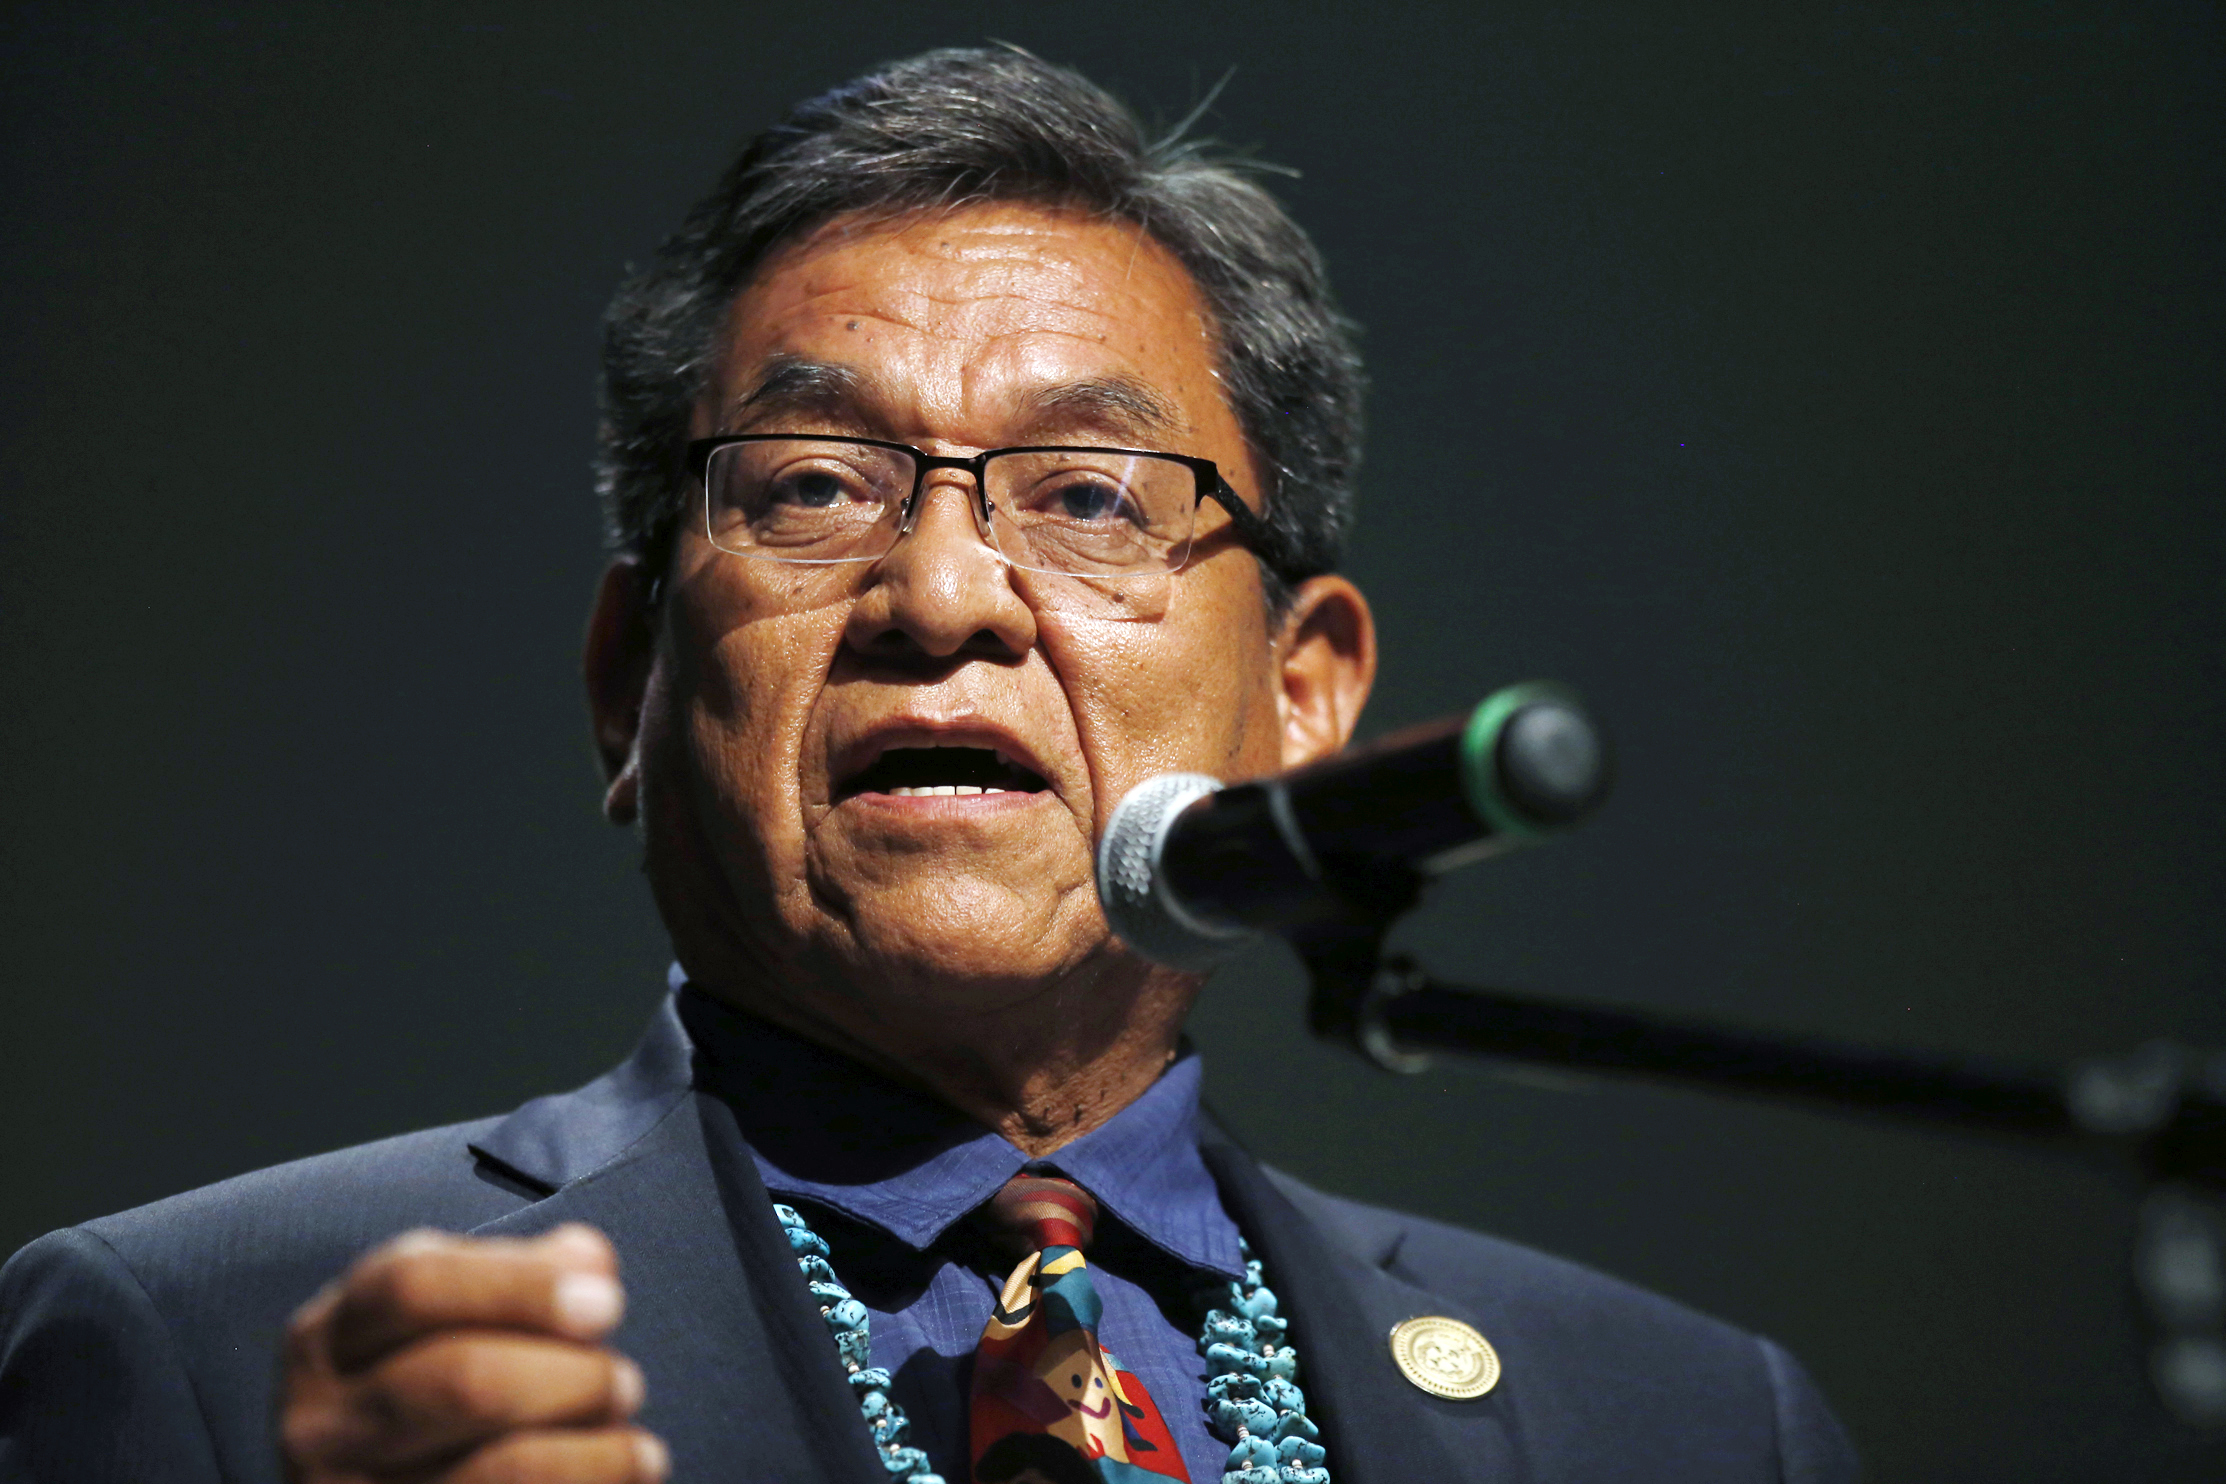 In this July 20, 2015 file photo, Navajo Nation President Russell Begaye talks with community members during a public meeting in Shiprock, N.M. The top two leaders on the Navajo Nation say recent suicides in communities affected by a mine spill have shaken reservation towns to their core. (Jon Austria/The Daily Times via AP, File) MANDATORY CREDIT